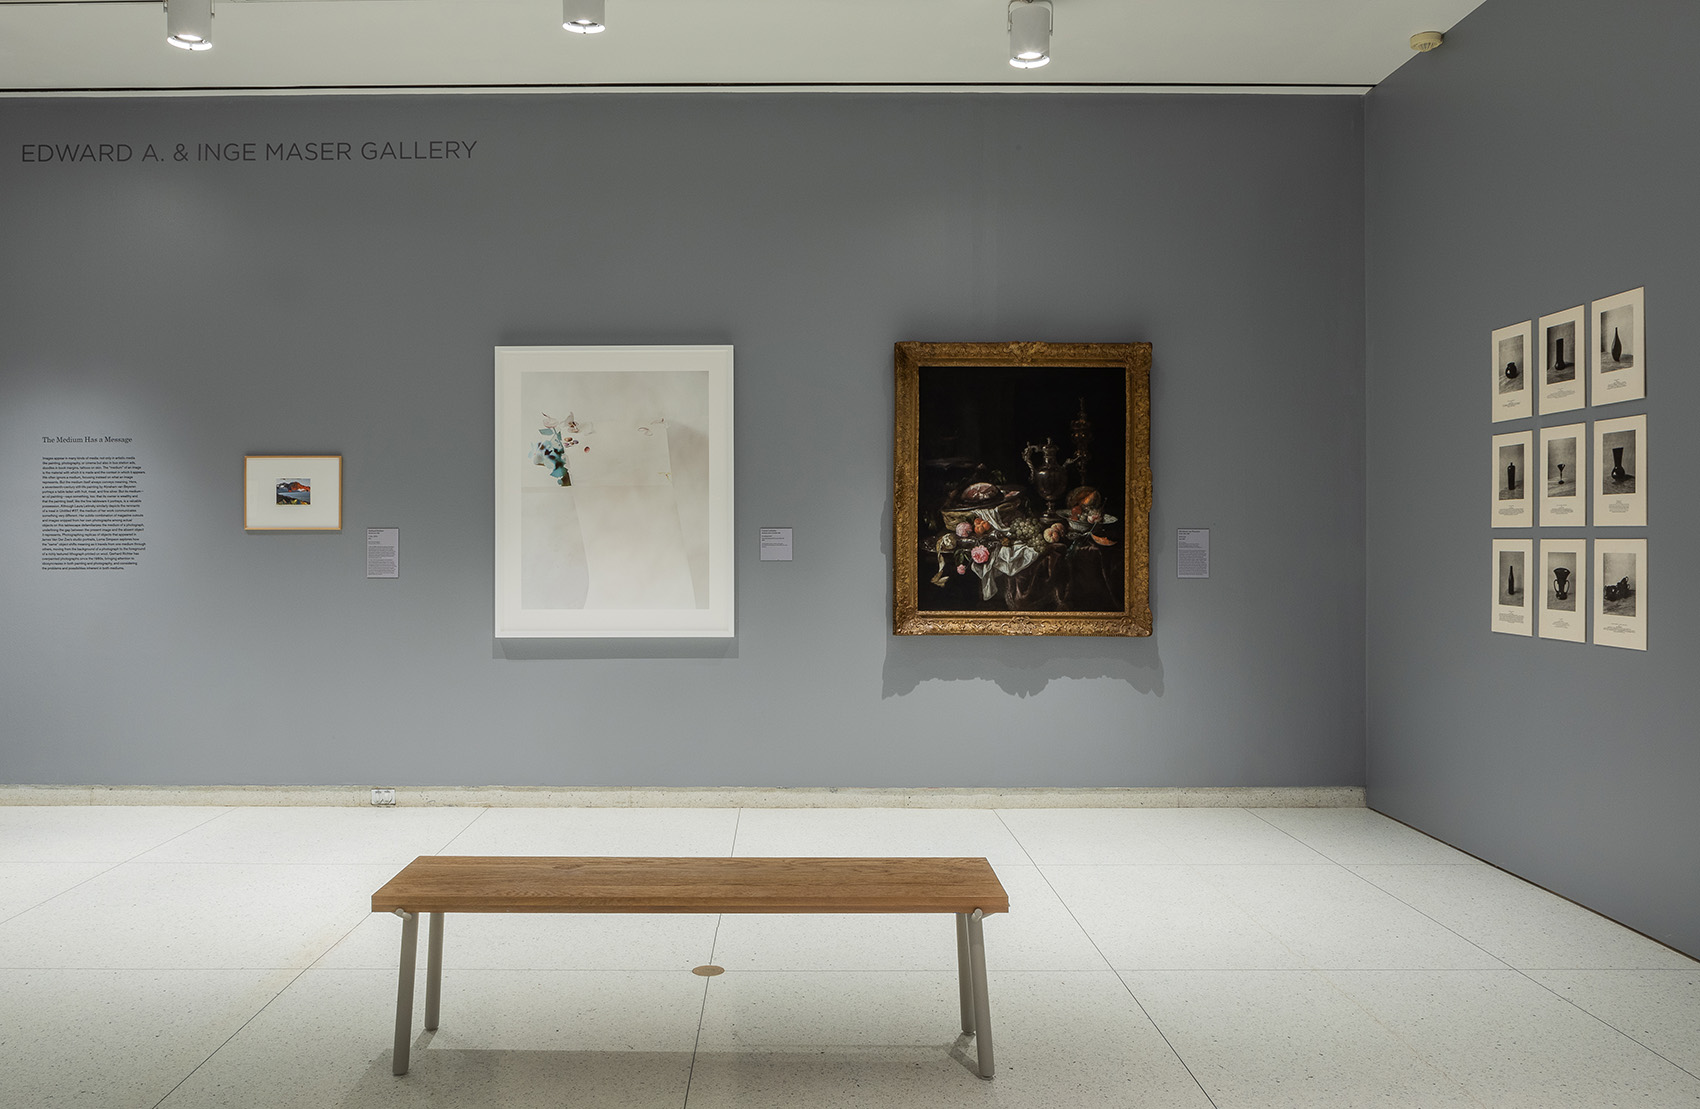 Framed photographs, a painting, and other works hang on a gray gallery wall, with a wooden bench in the foreground